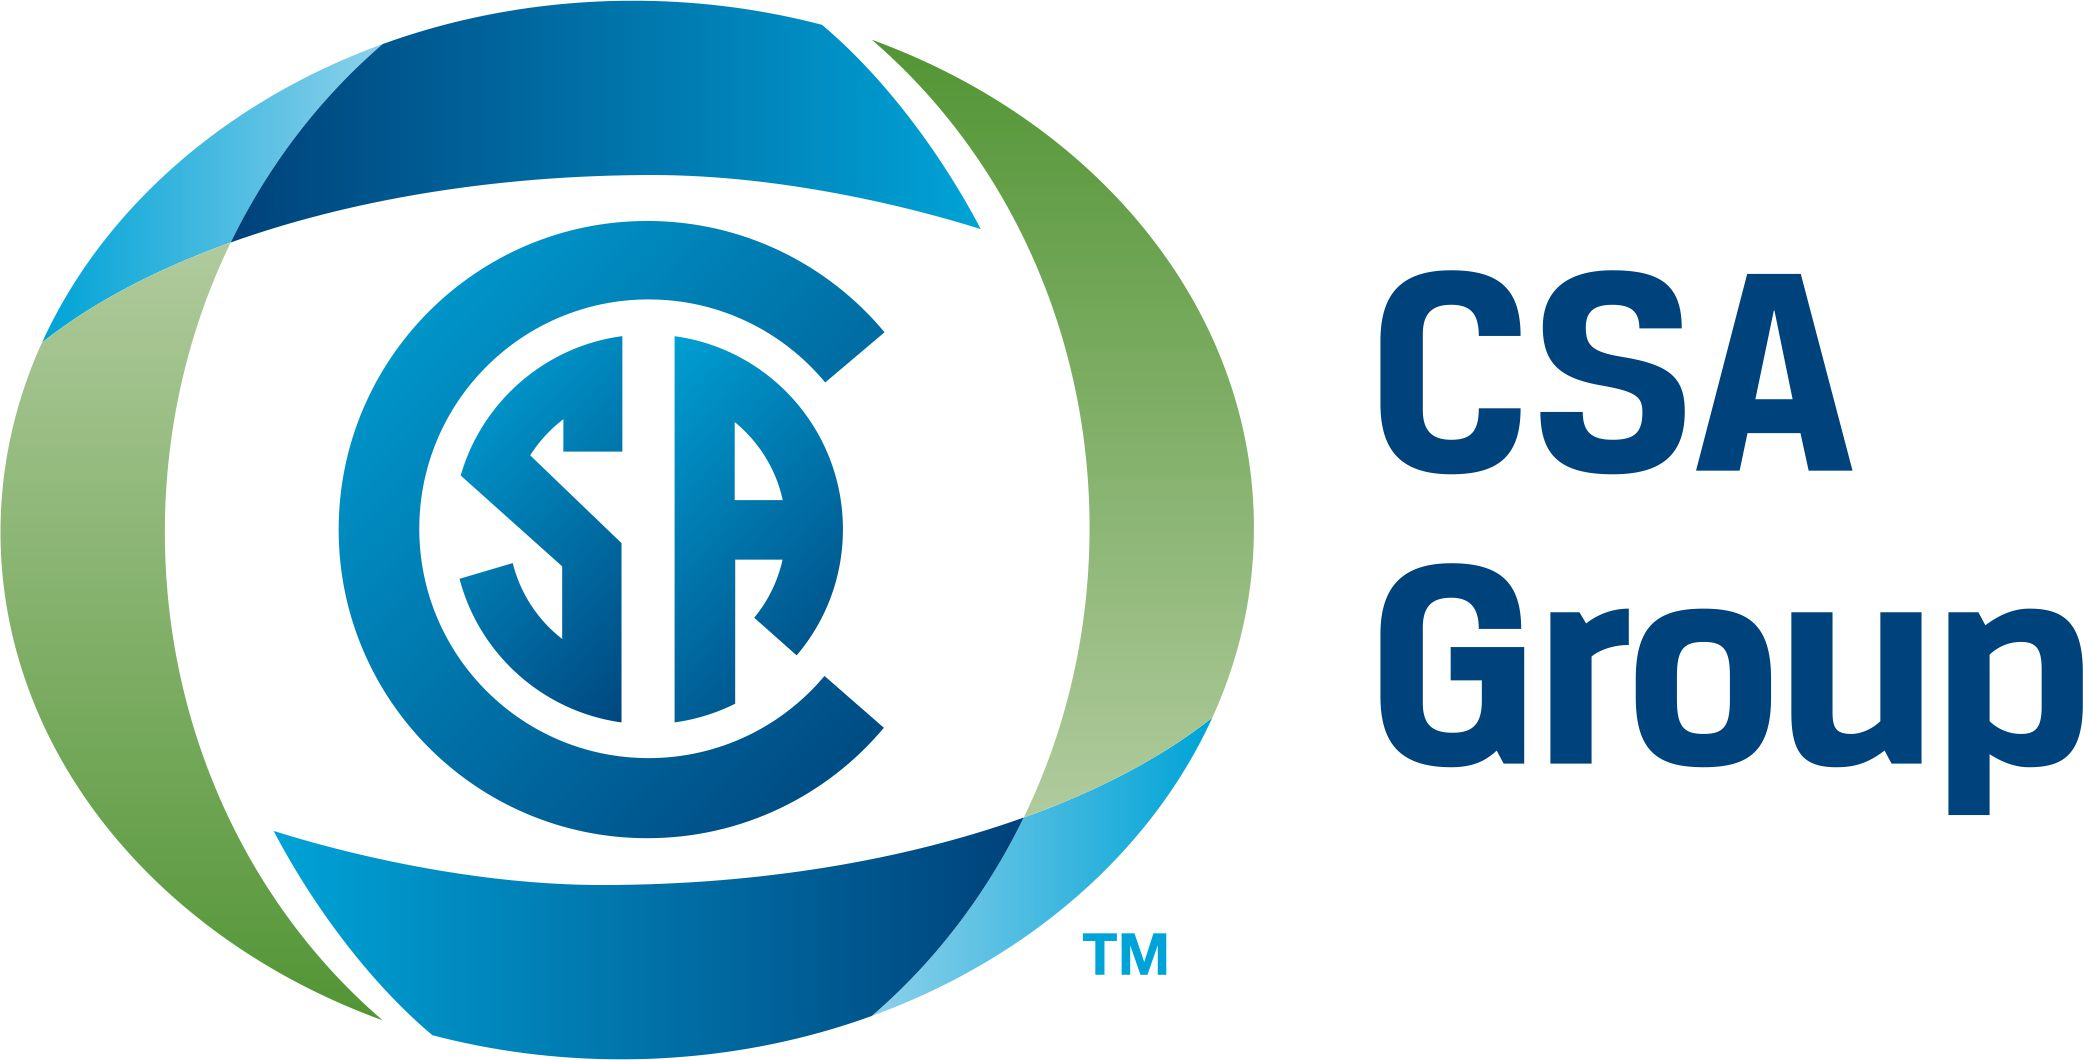 CSA ENGLISH new logo.jpg